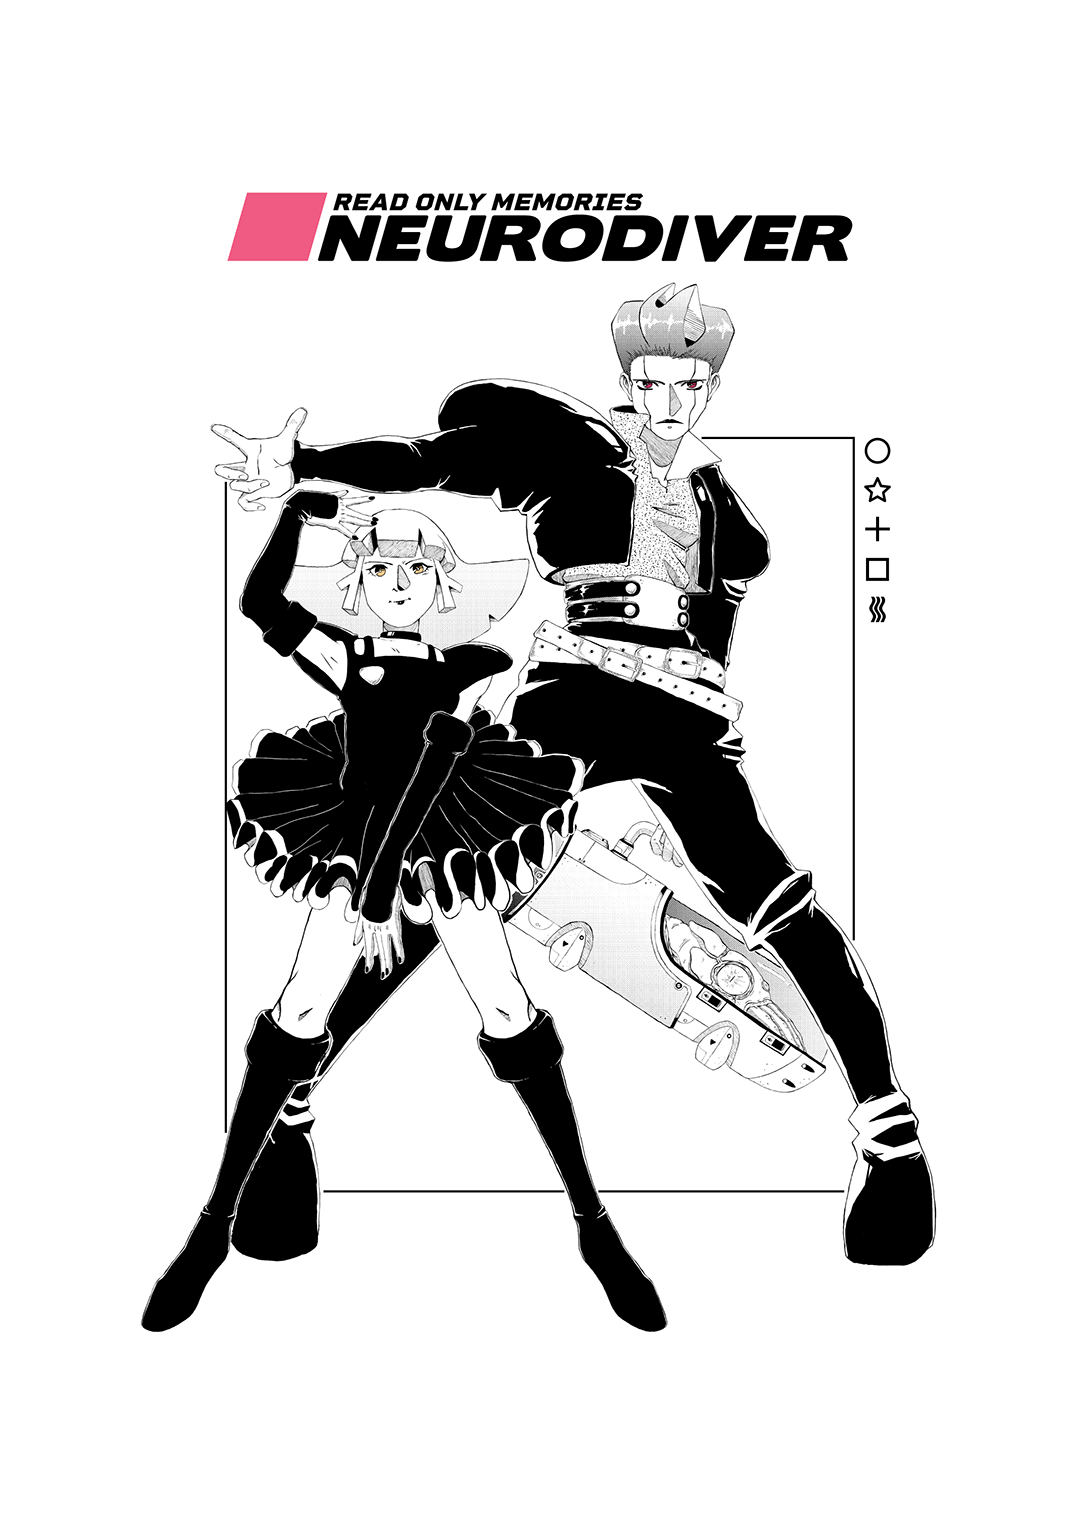 Neurodiver main characters ES88 and GATE